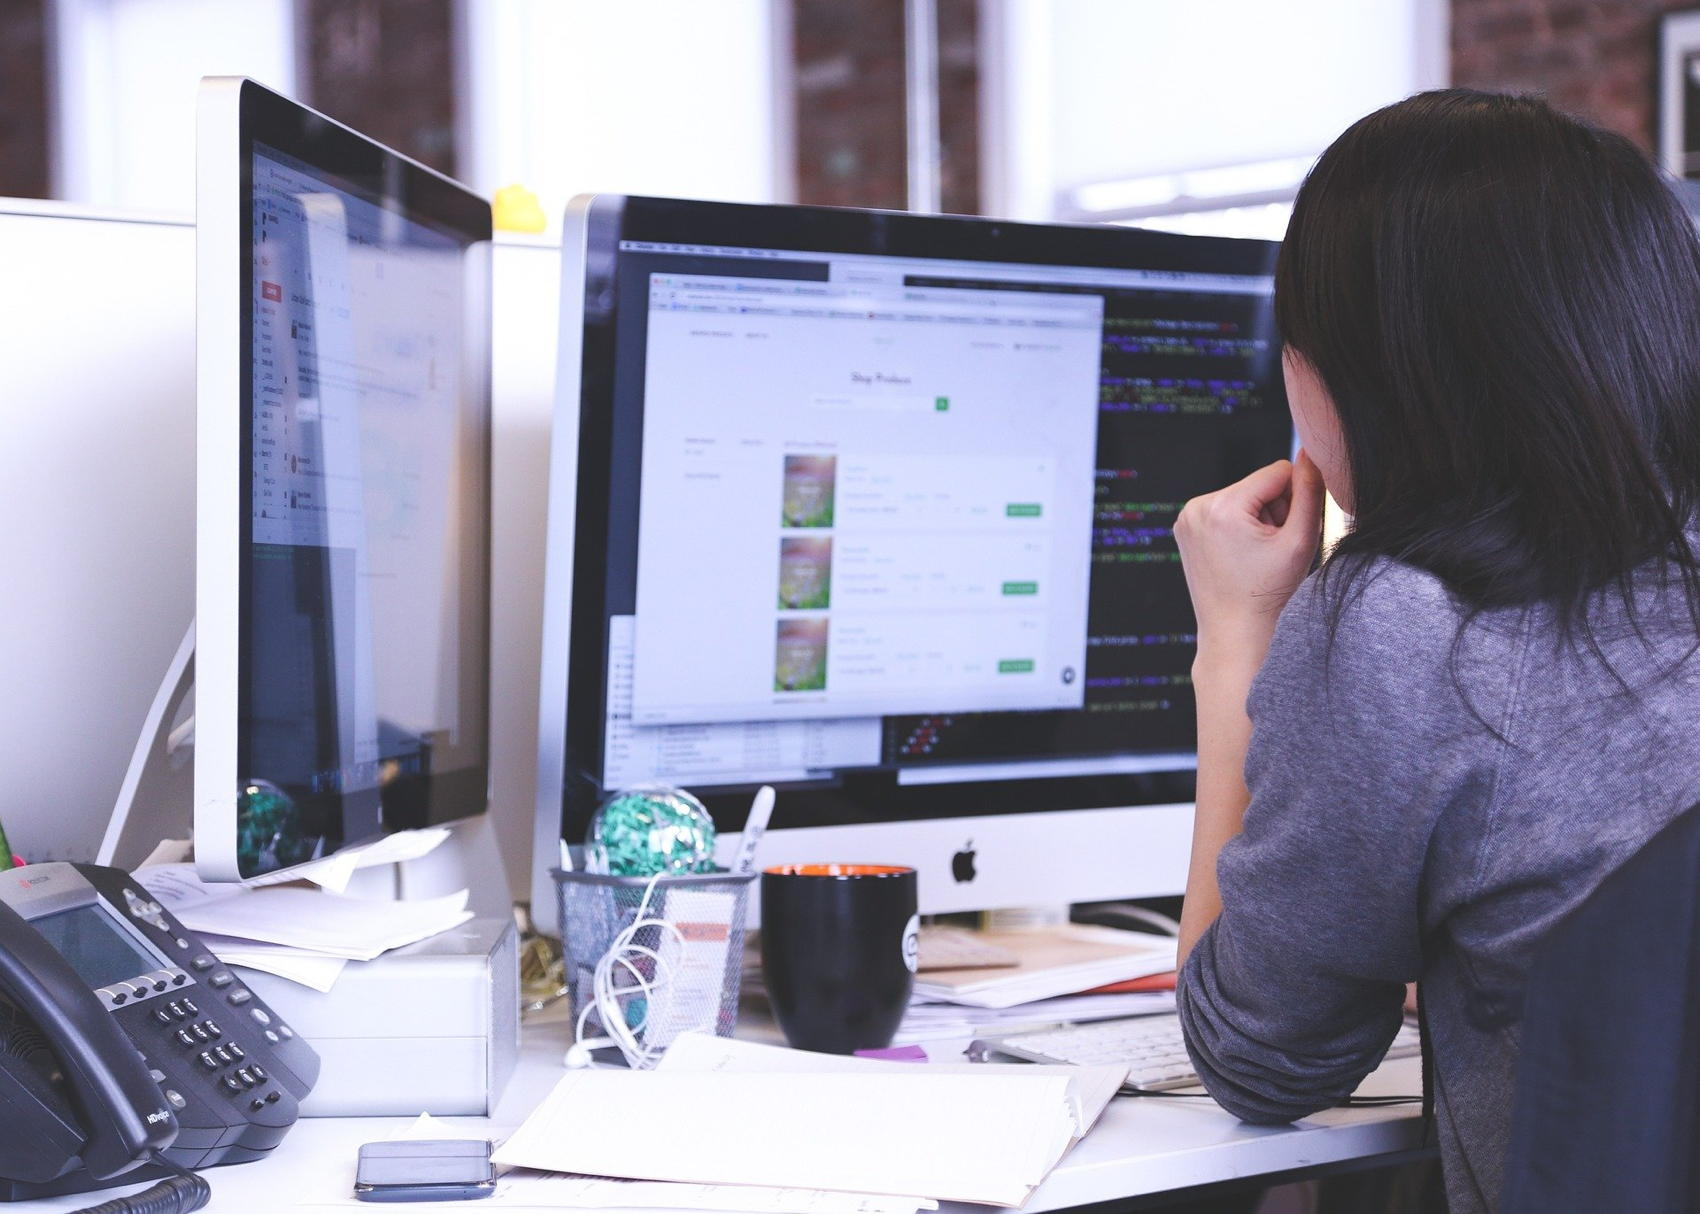 Woman at Workstatino - Image by StartupStockPhotos